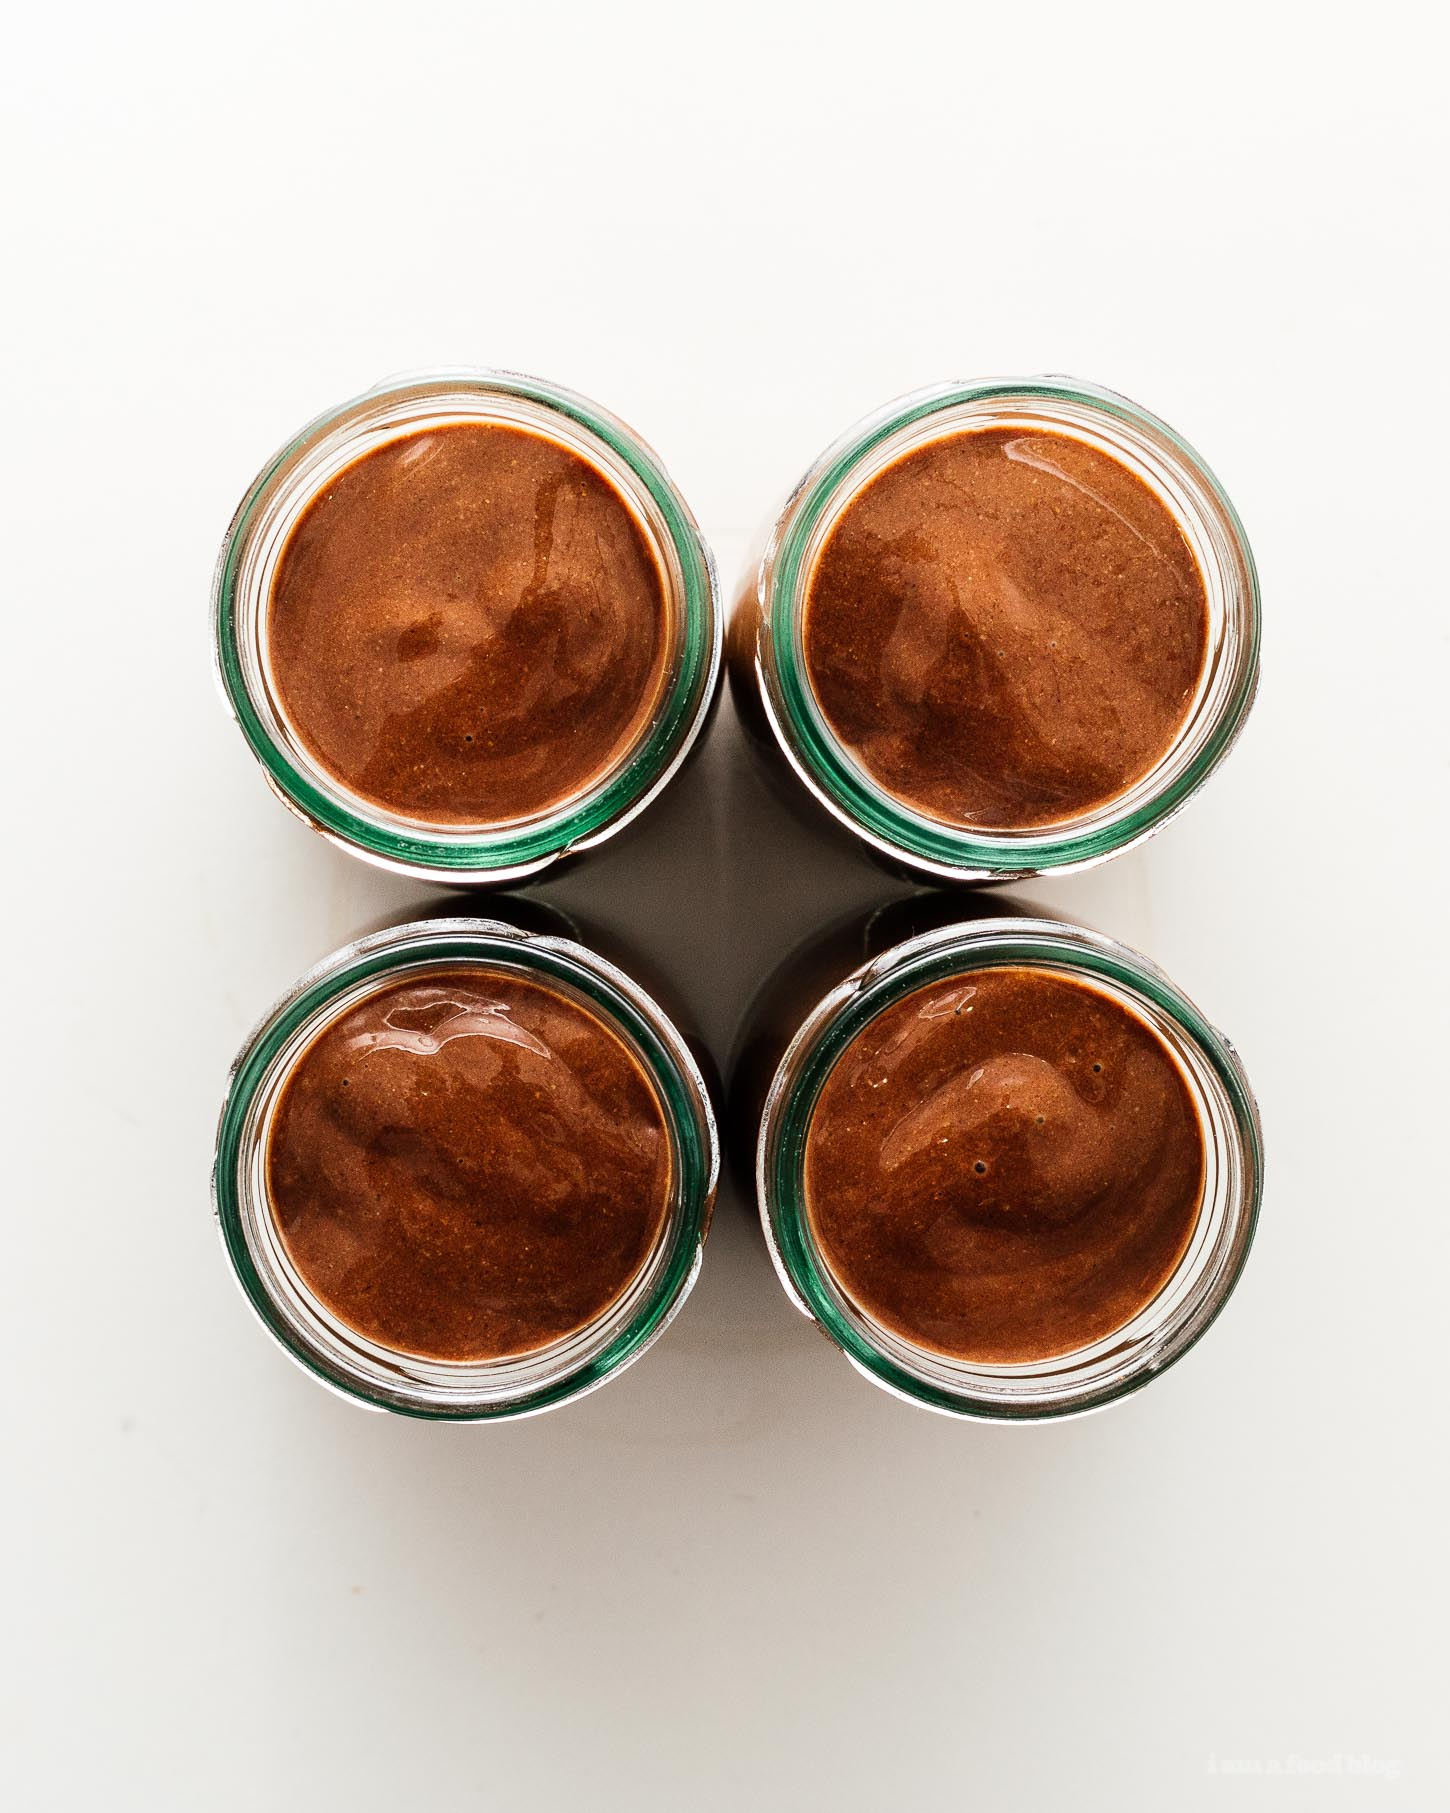 4 Ingredient Vegan Paleo Chocolate Chia Pudding | www.iamafoodblog.com